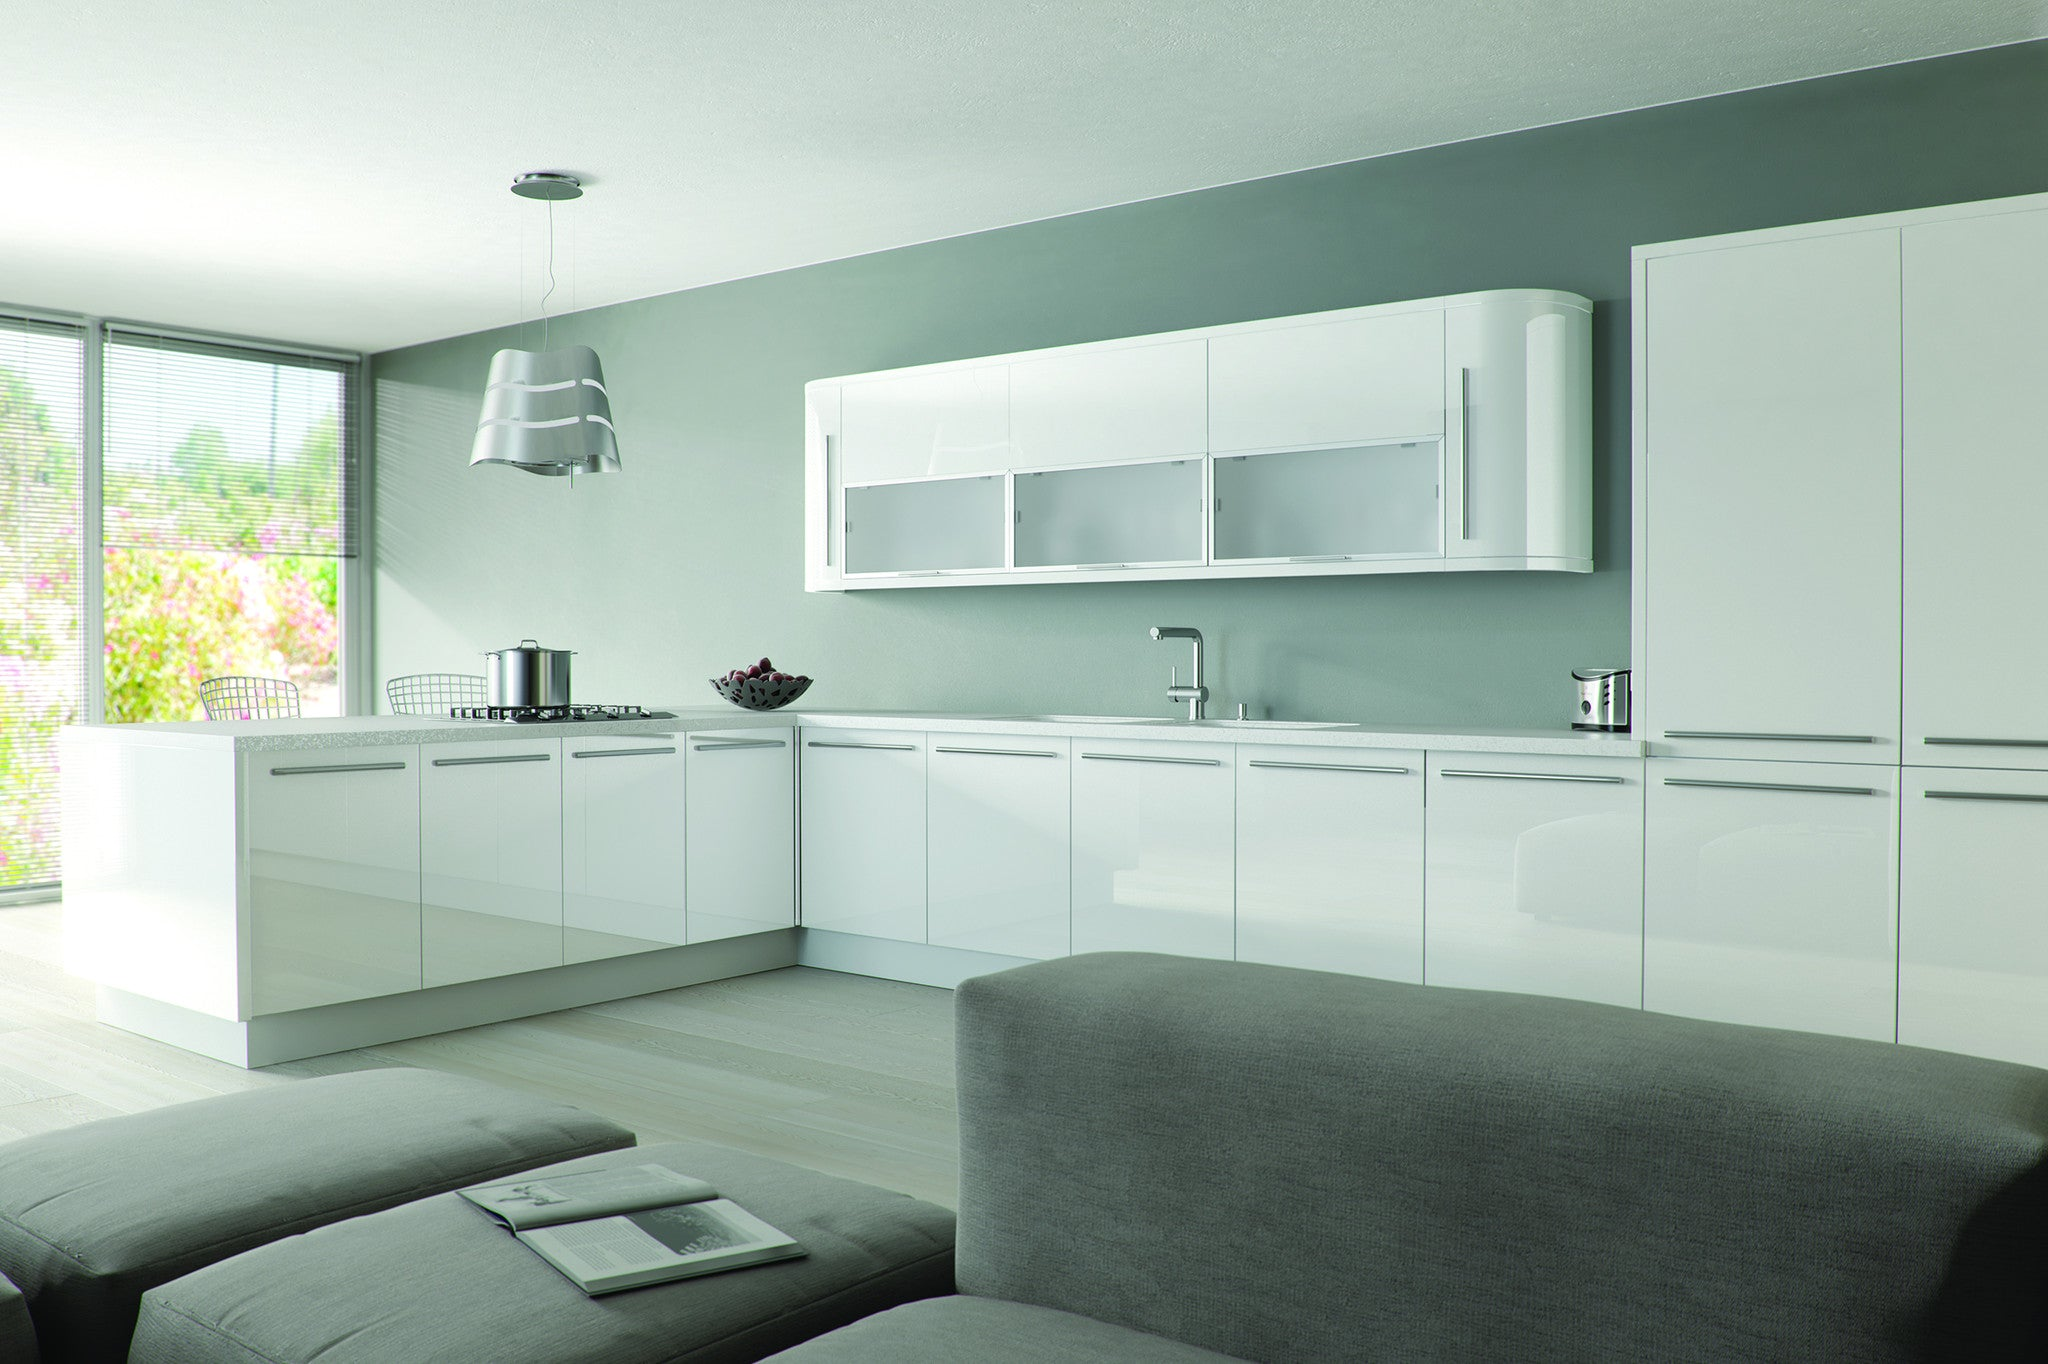 Gloss Kitchens: Buy Kitchens Online at Factory Direct Prices – Uspec ...